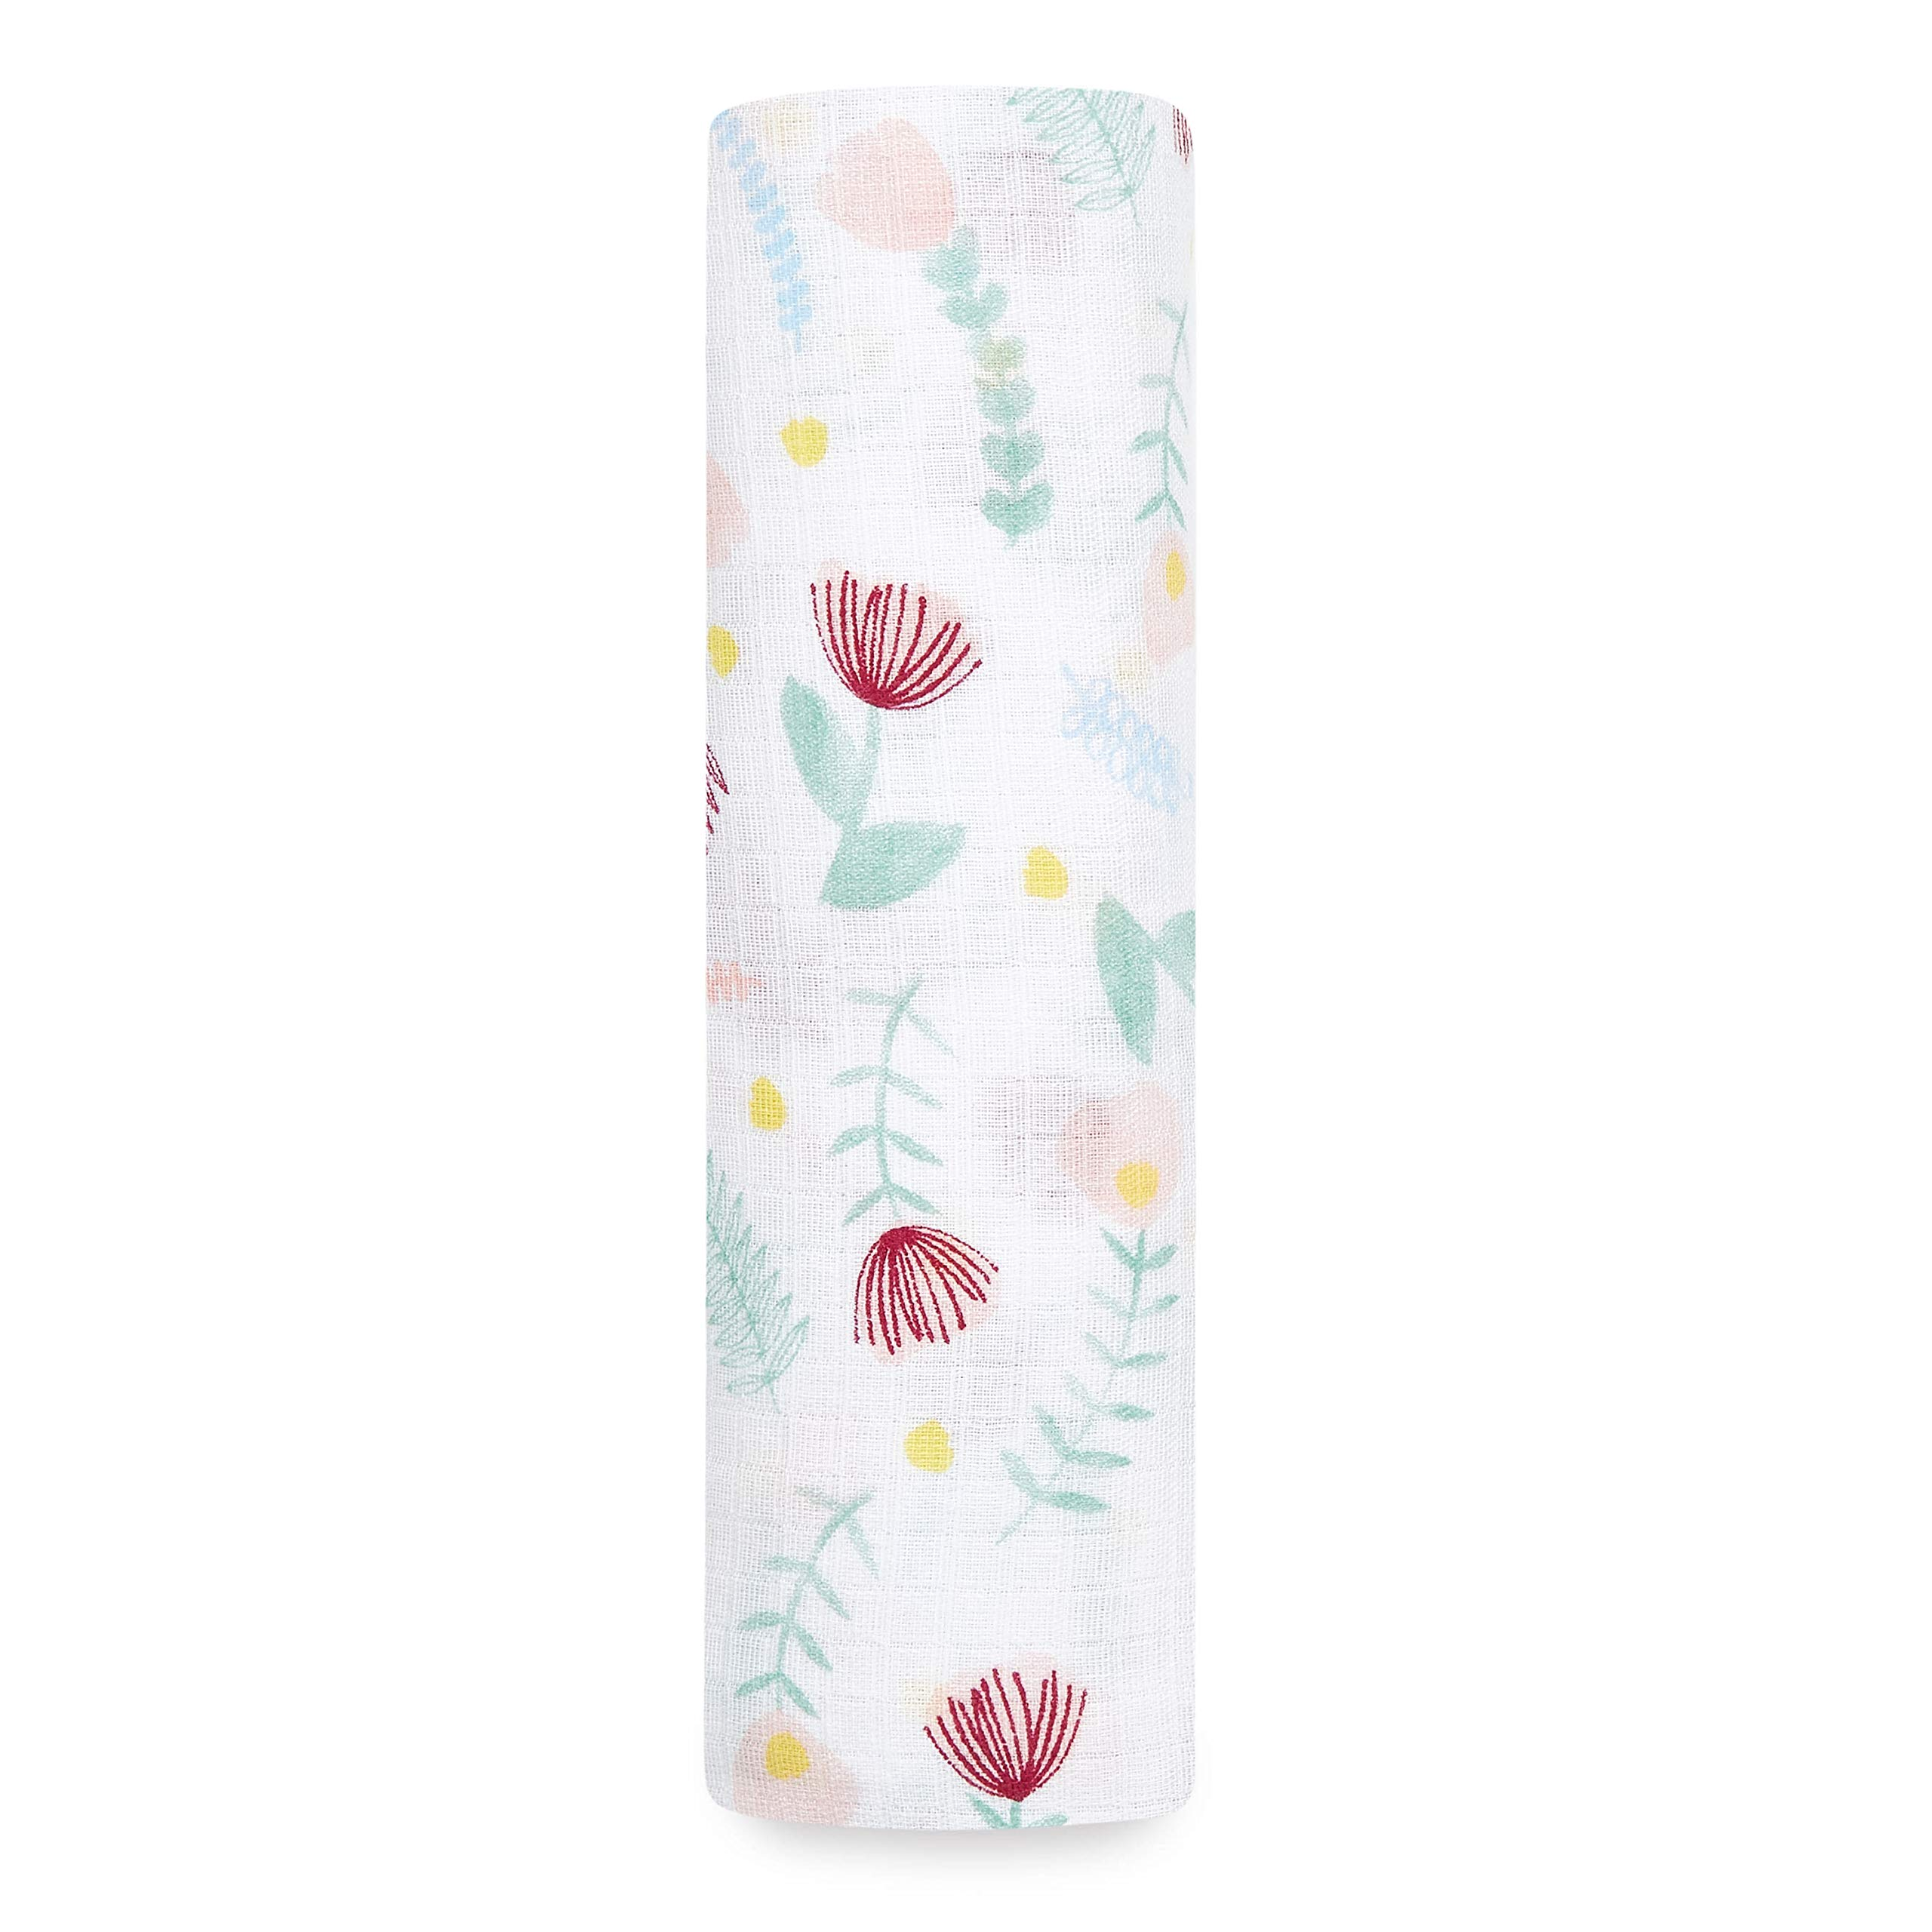 Aden by aden + anais Swaddle Blanket, Muslin Blankets for Girls & Boys, Baby Receiving Swaddles, Ideal Newborn Gifts, Unisex Infant Shower Items, Toddler Gift, Wearable Swaddling Wrap, Flora Fauna